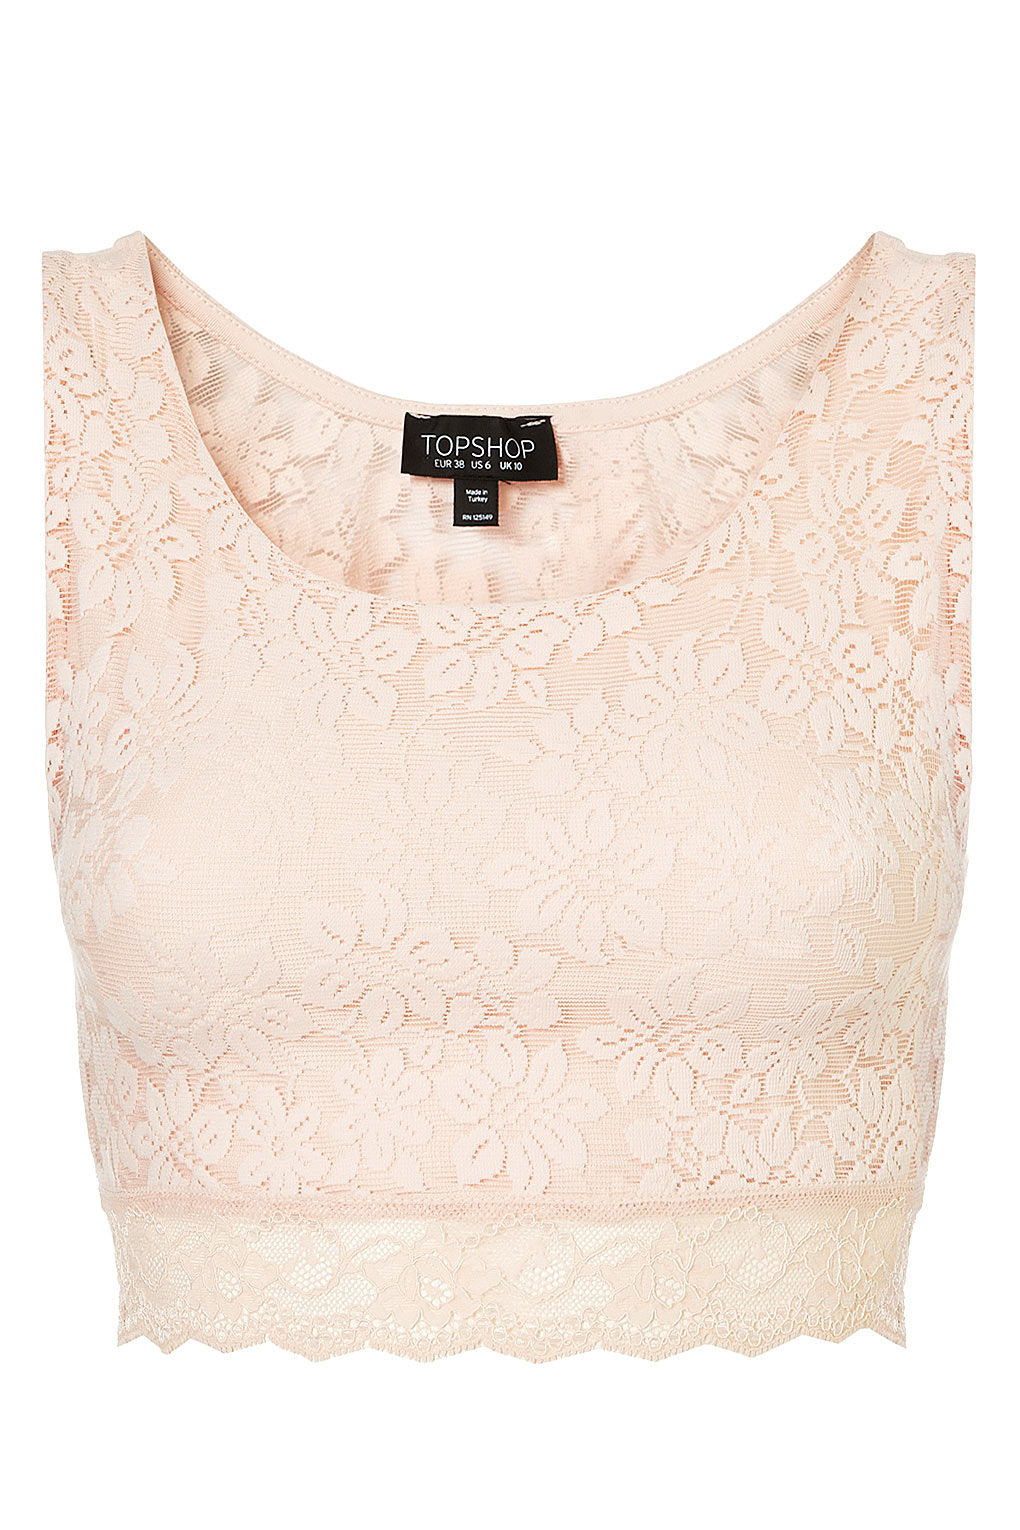 TOPSHOP Lace Crop Top in Pink - Lyst